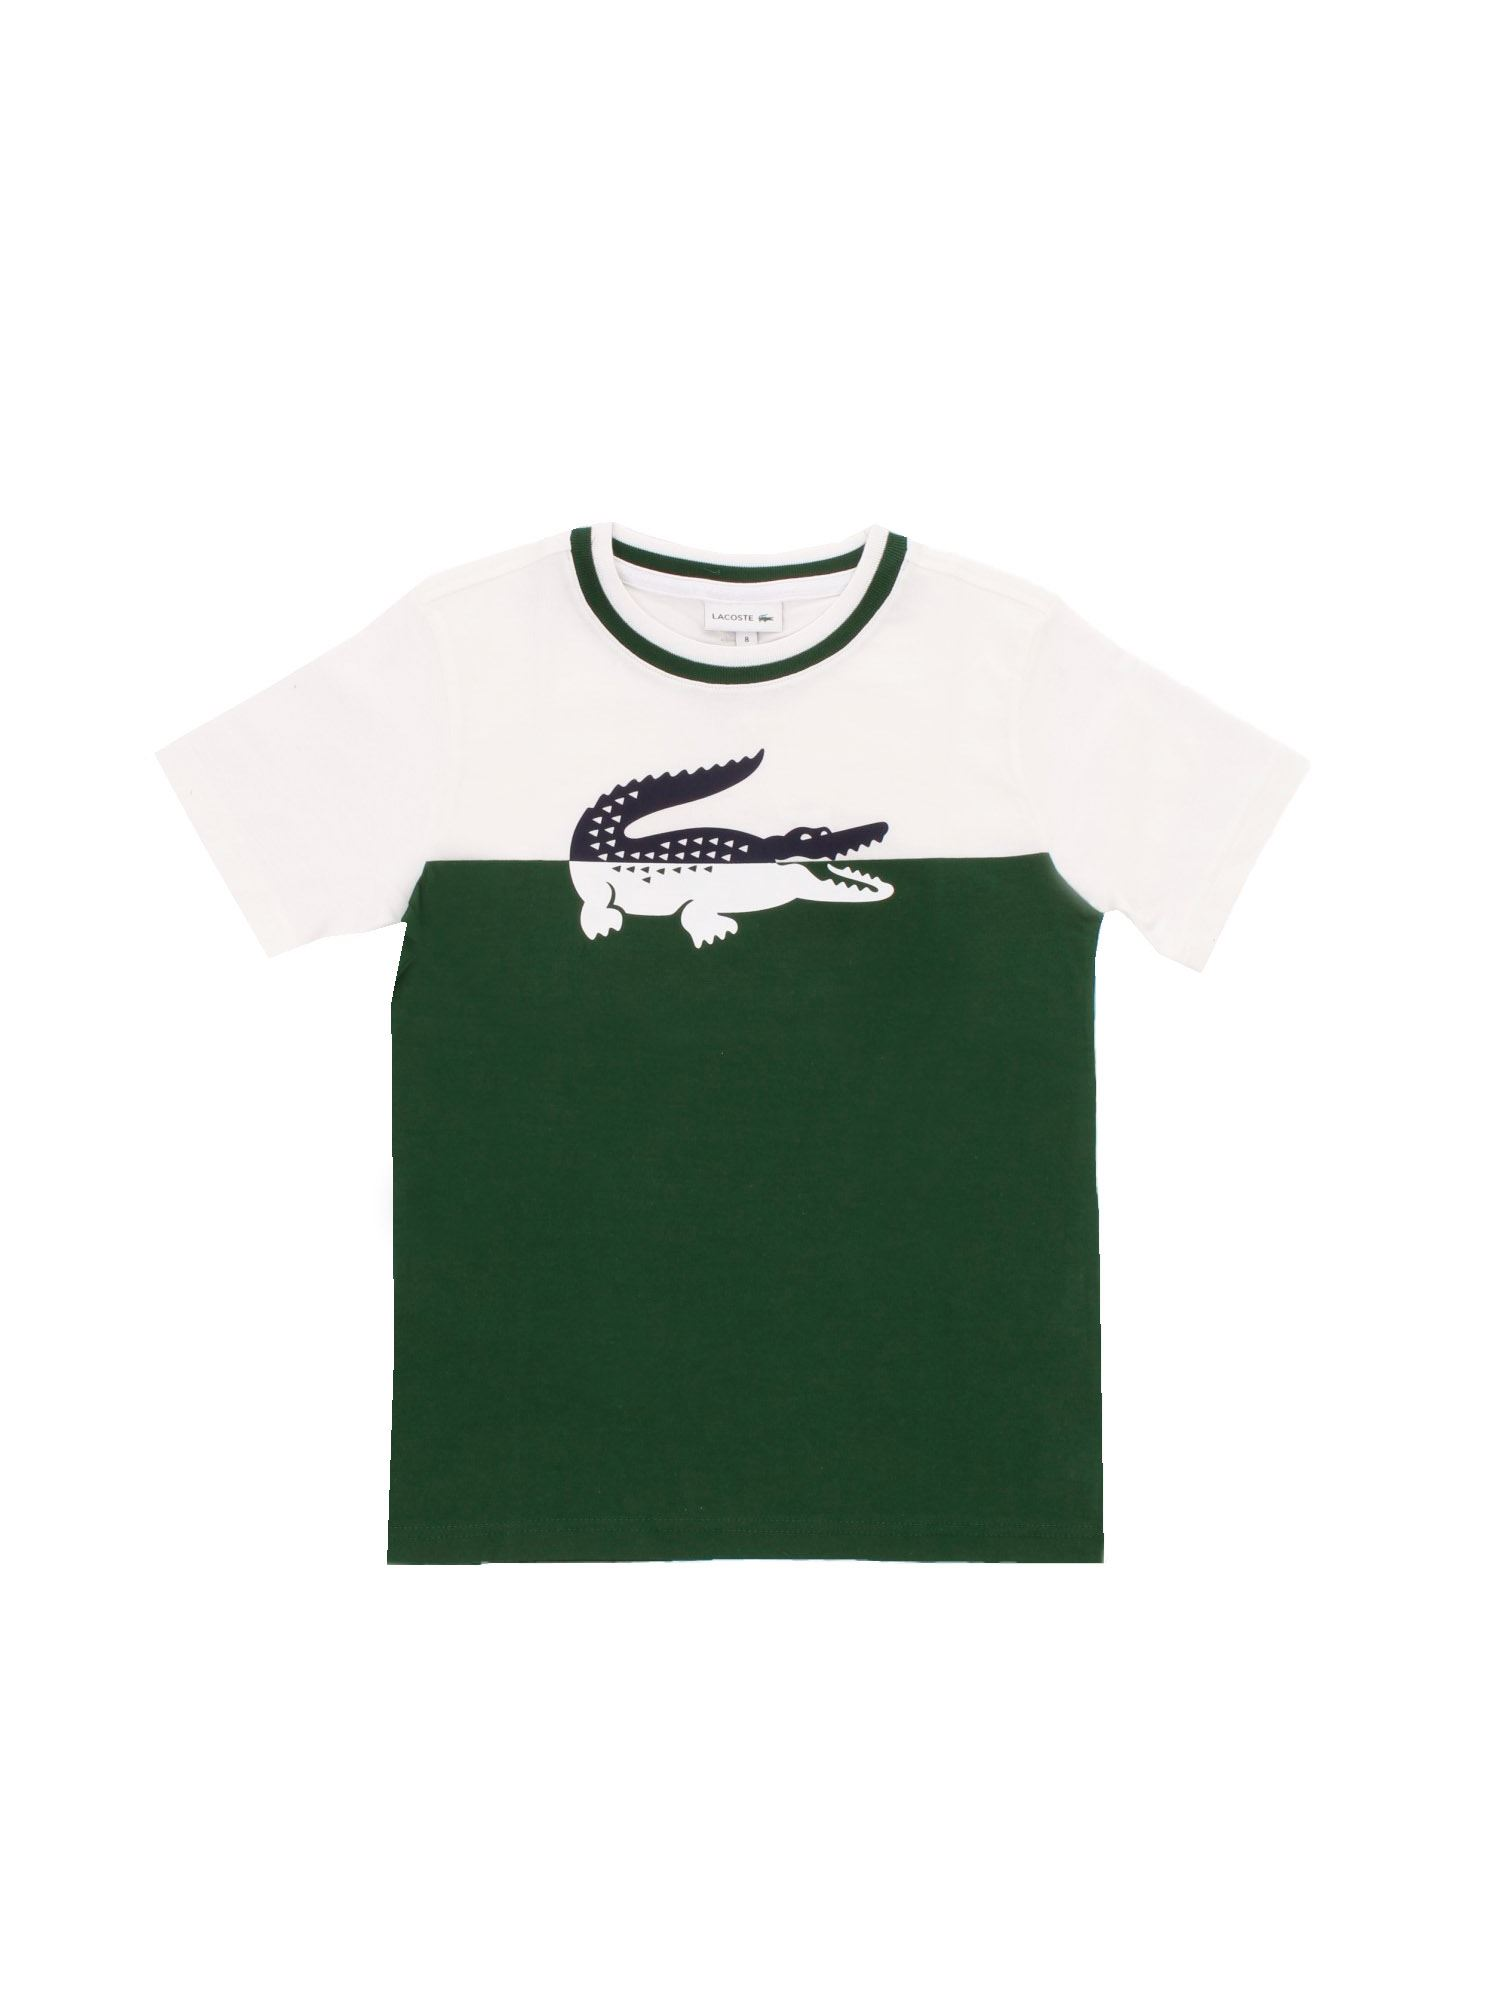 Lacoste LOGO PRINT T-SHIRT IN WHITE AND GREEN